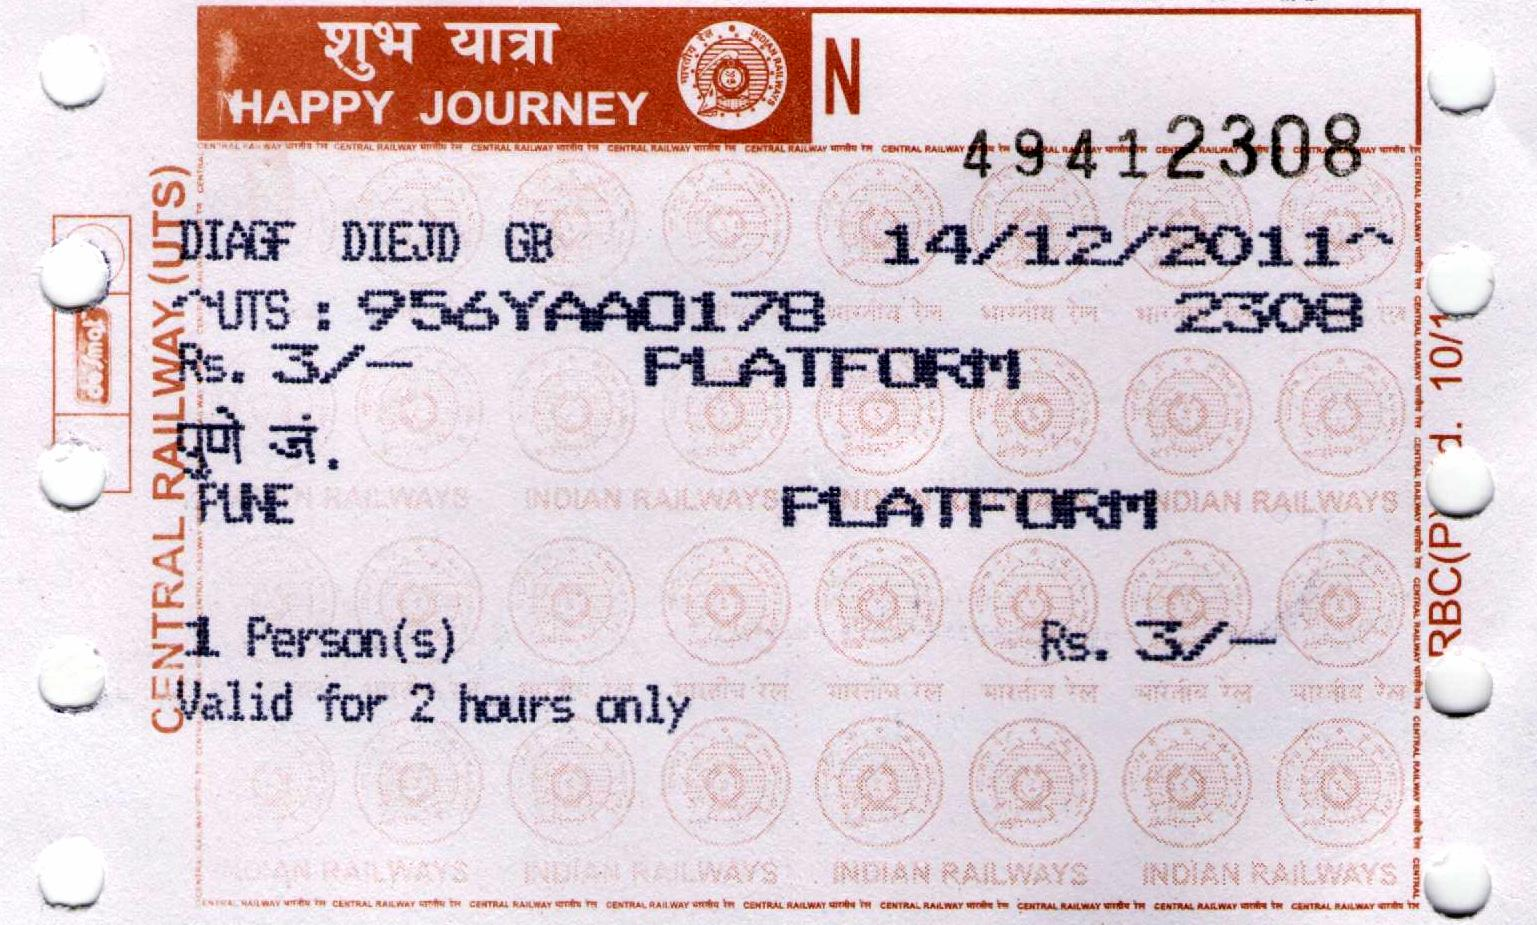 File:Platform ticket of indian railways jpg - Wikipedia